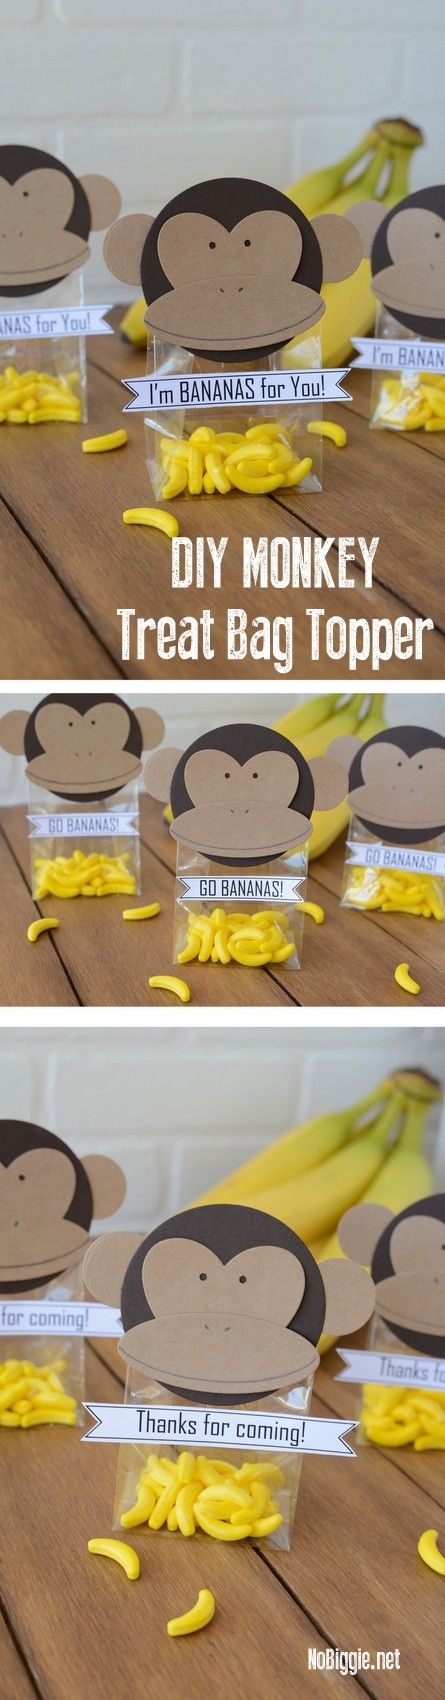 We're celebrating that Curious George is now streaming only on Hulu with these adorable DIY monkey treat bag toppers!  | NoBiggie.net